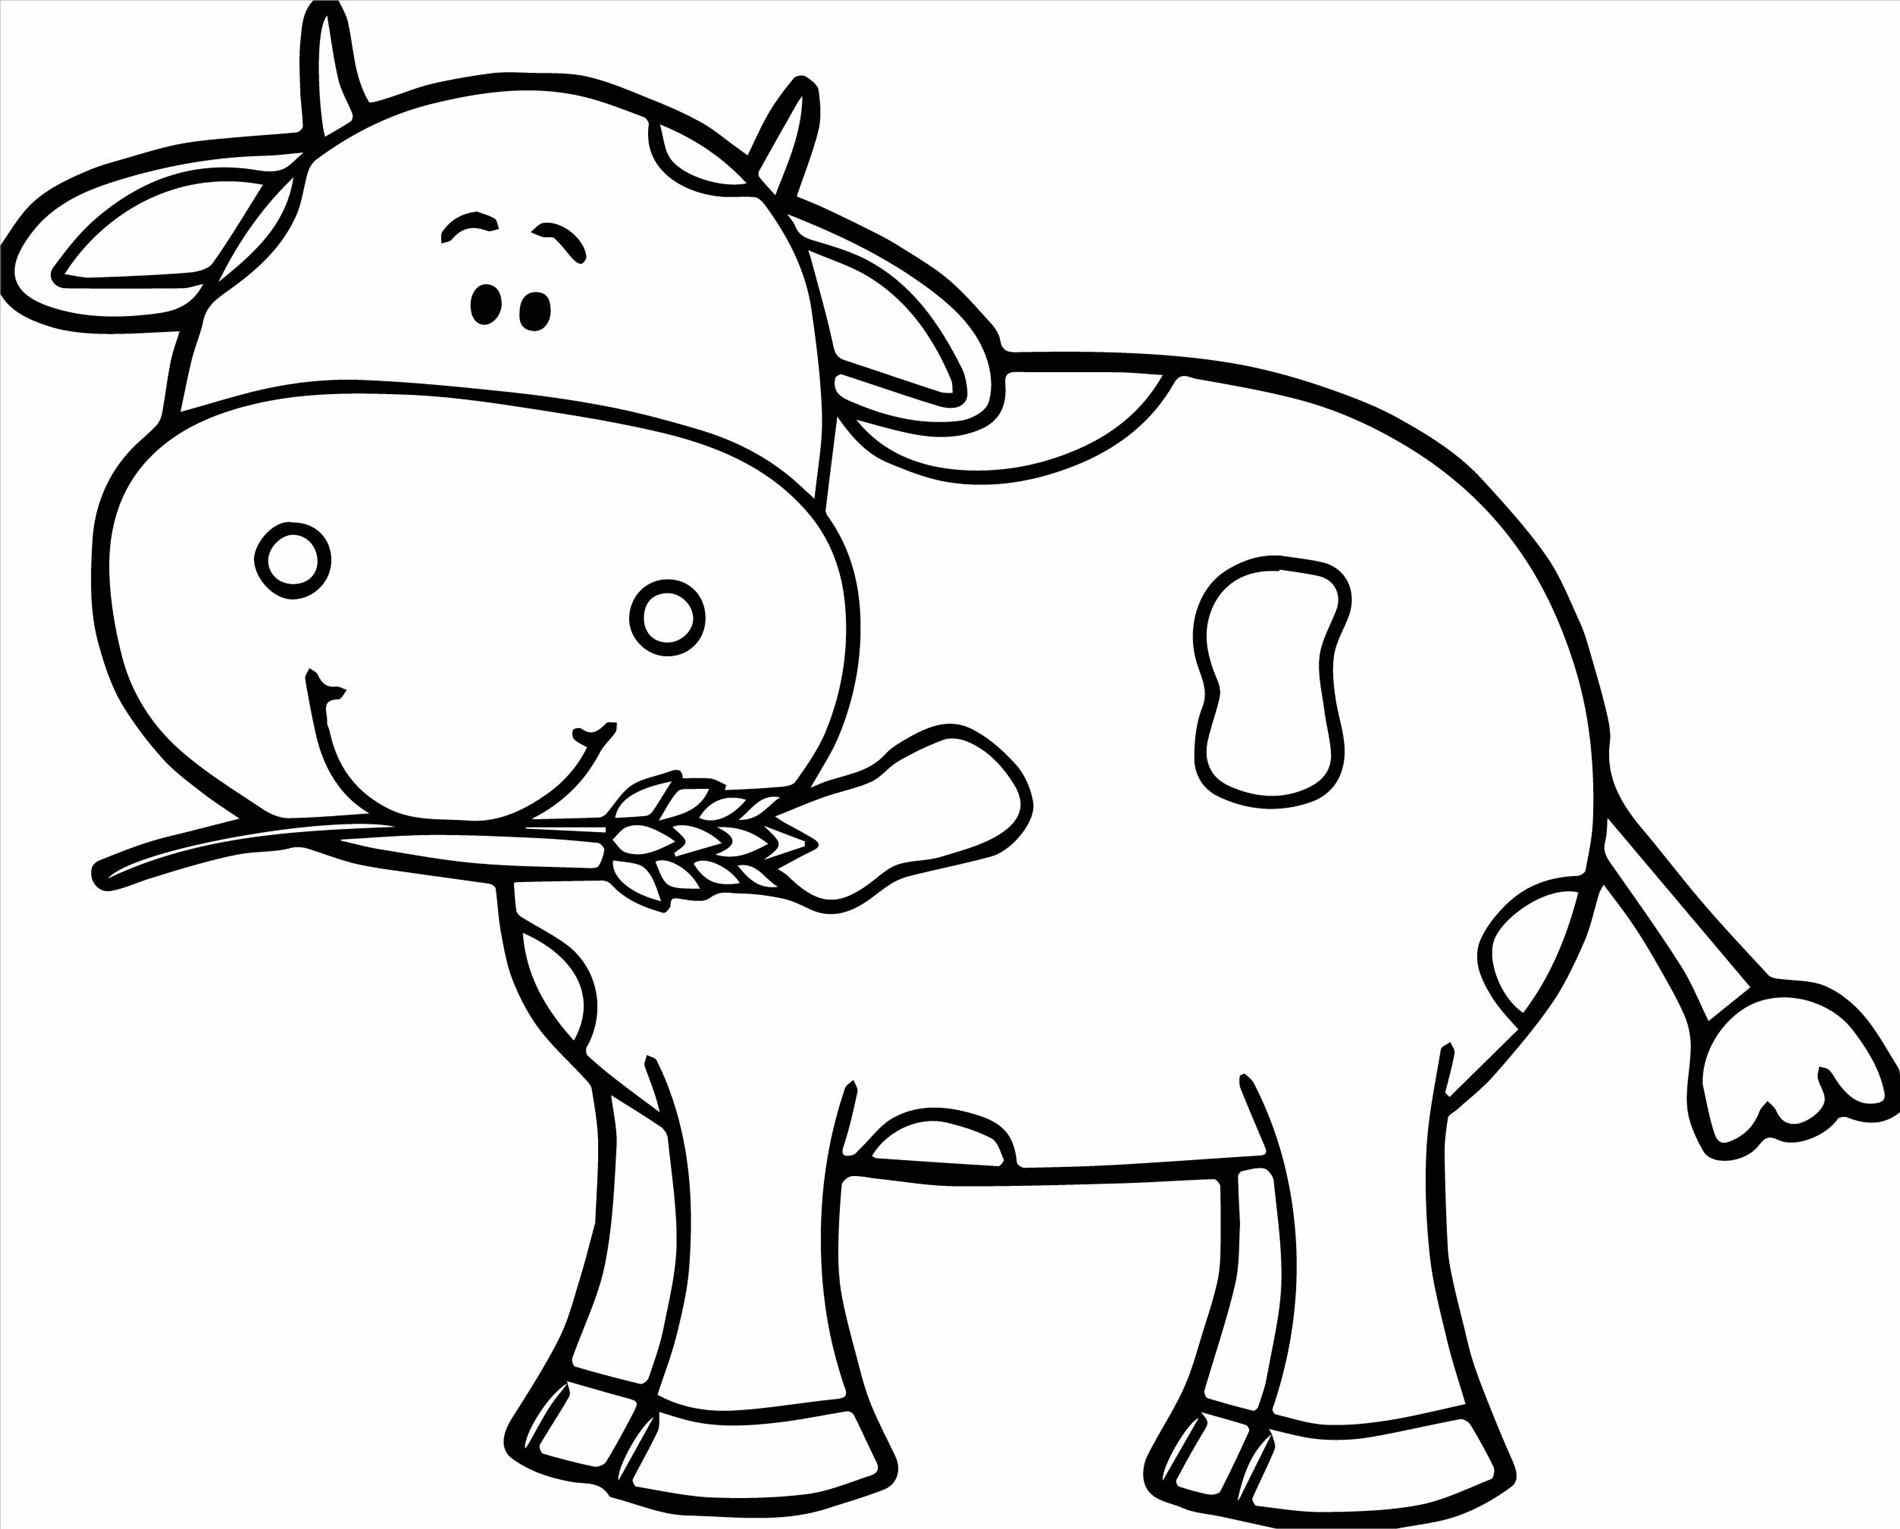 dairy farm coloring pages cow tail coloring page coloring pages farm pages coloring dairy